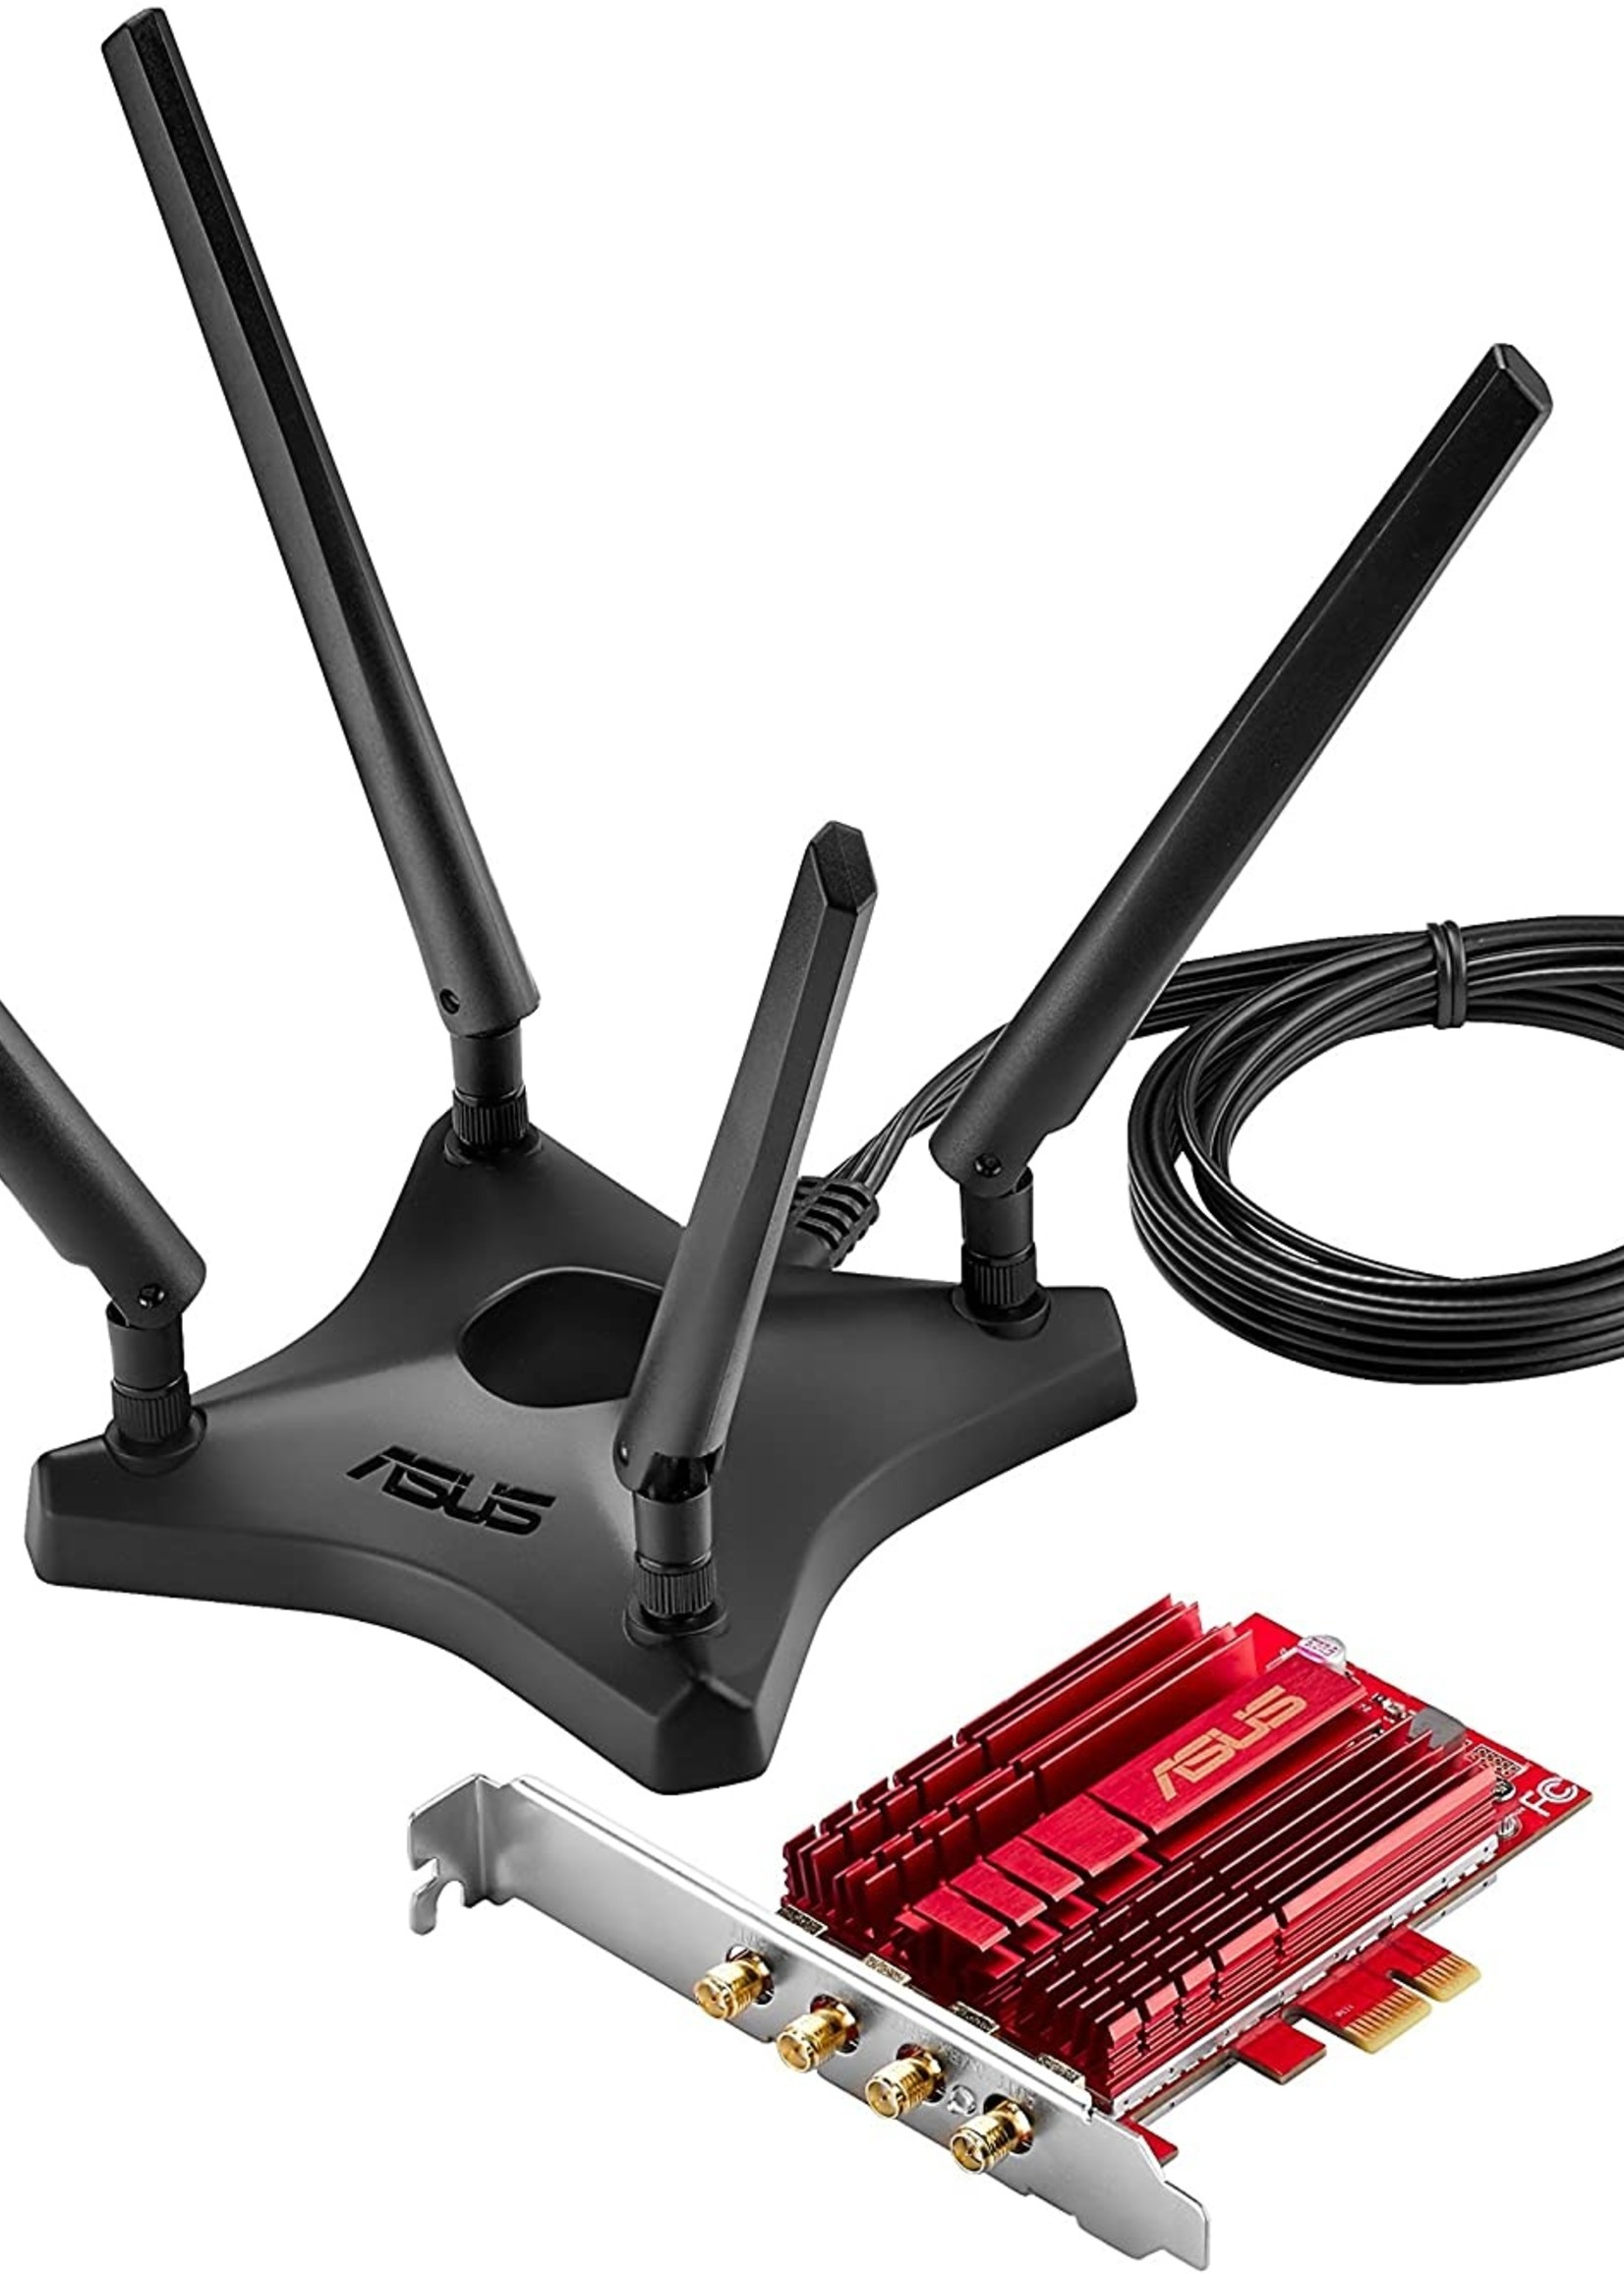 ASUS ASUS PCE-AC88 Dual-Band 4x4 AC3100 WiFi PCIe adapter